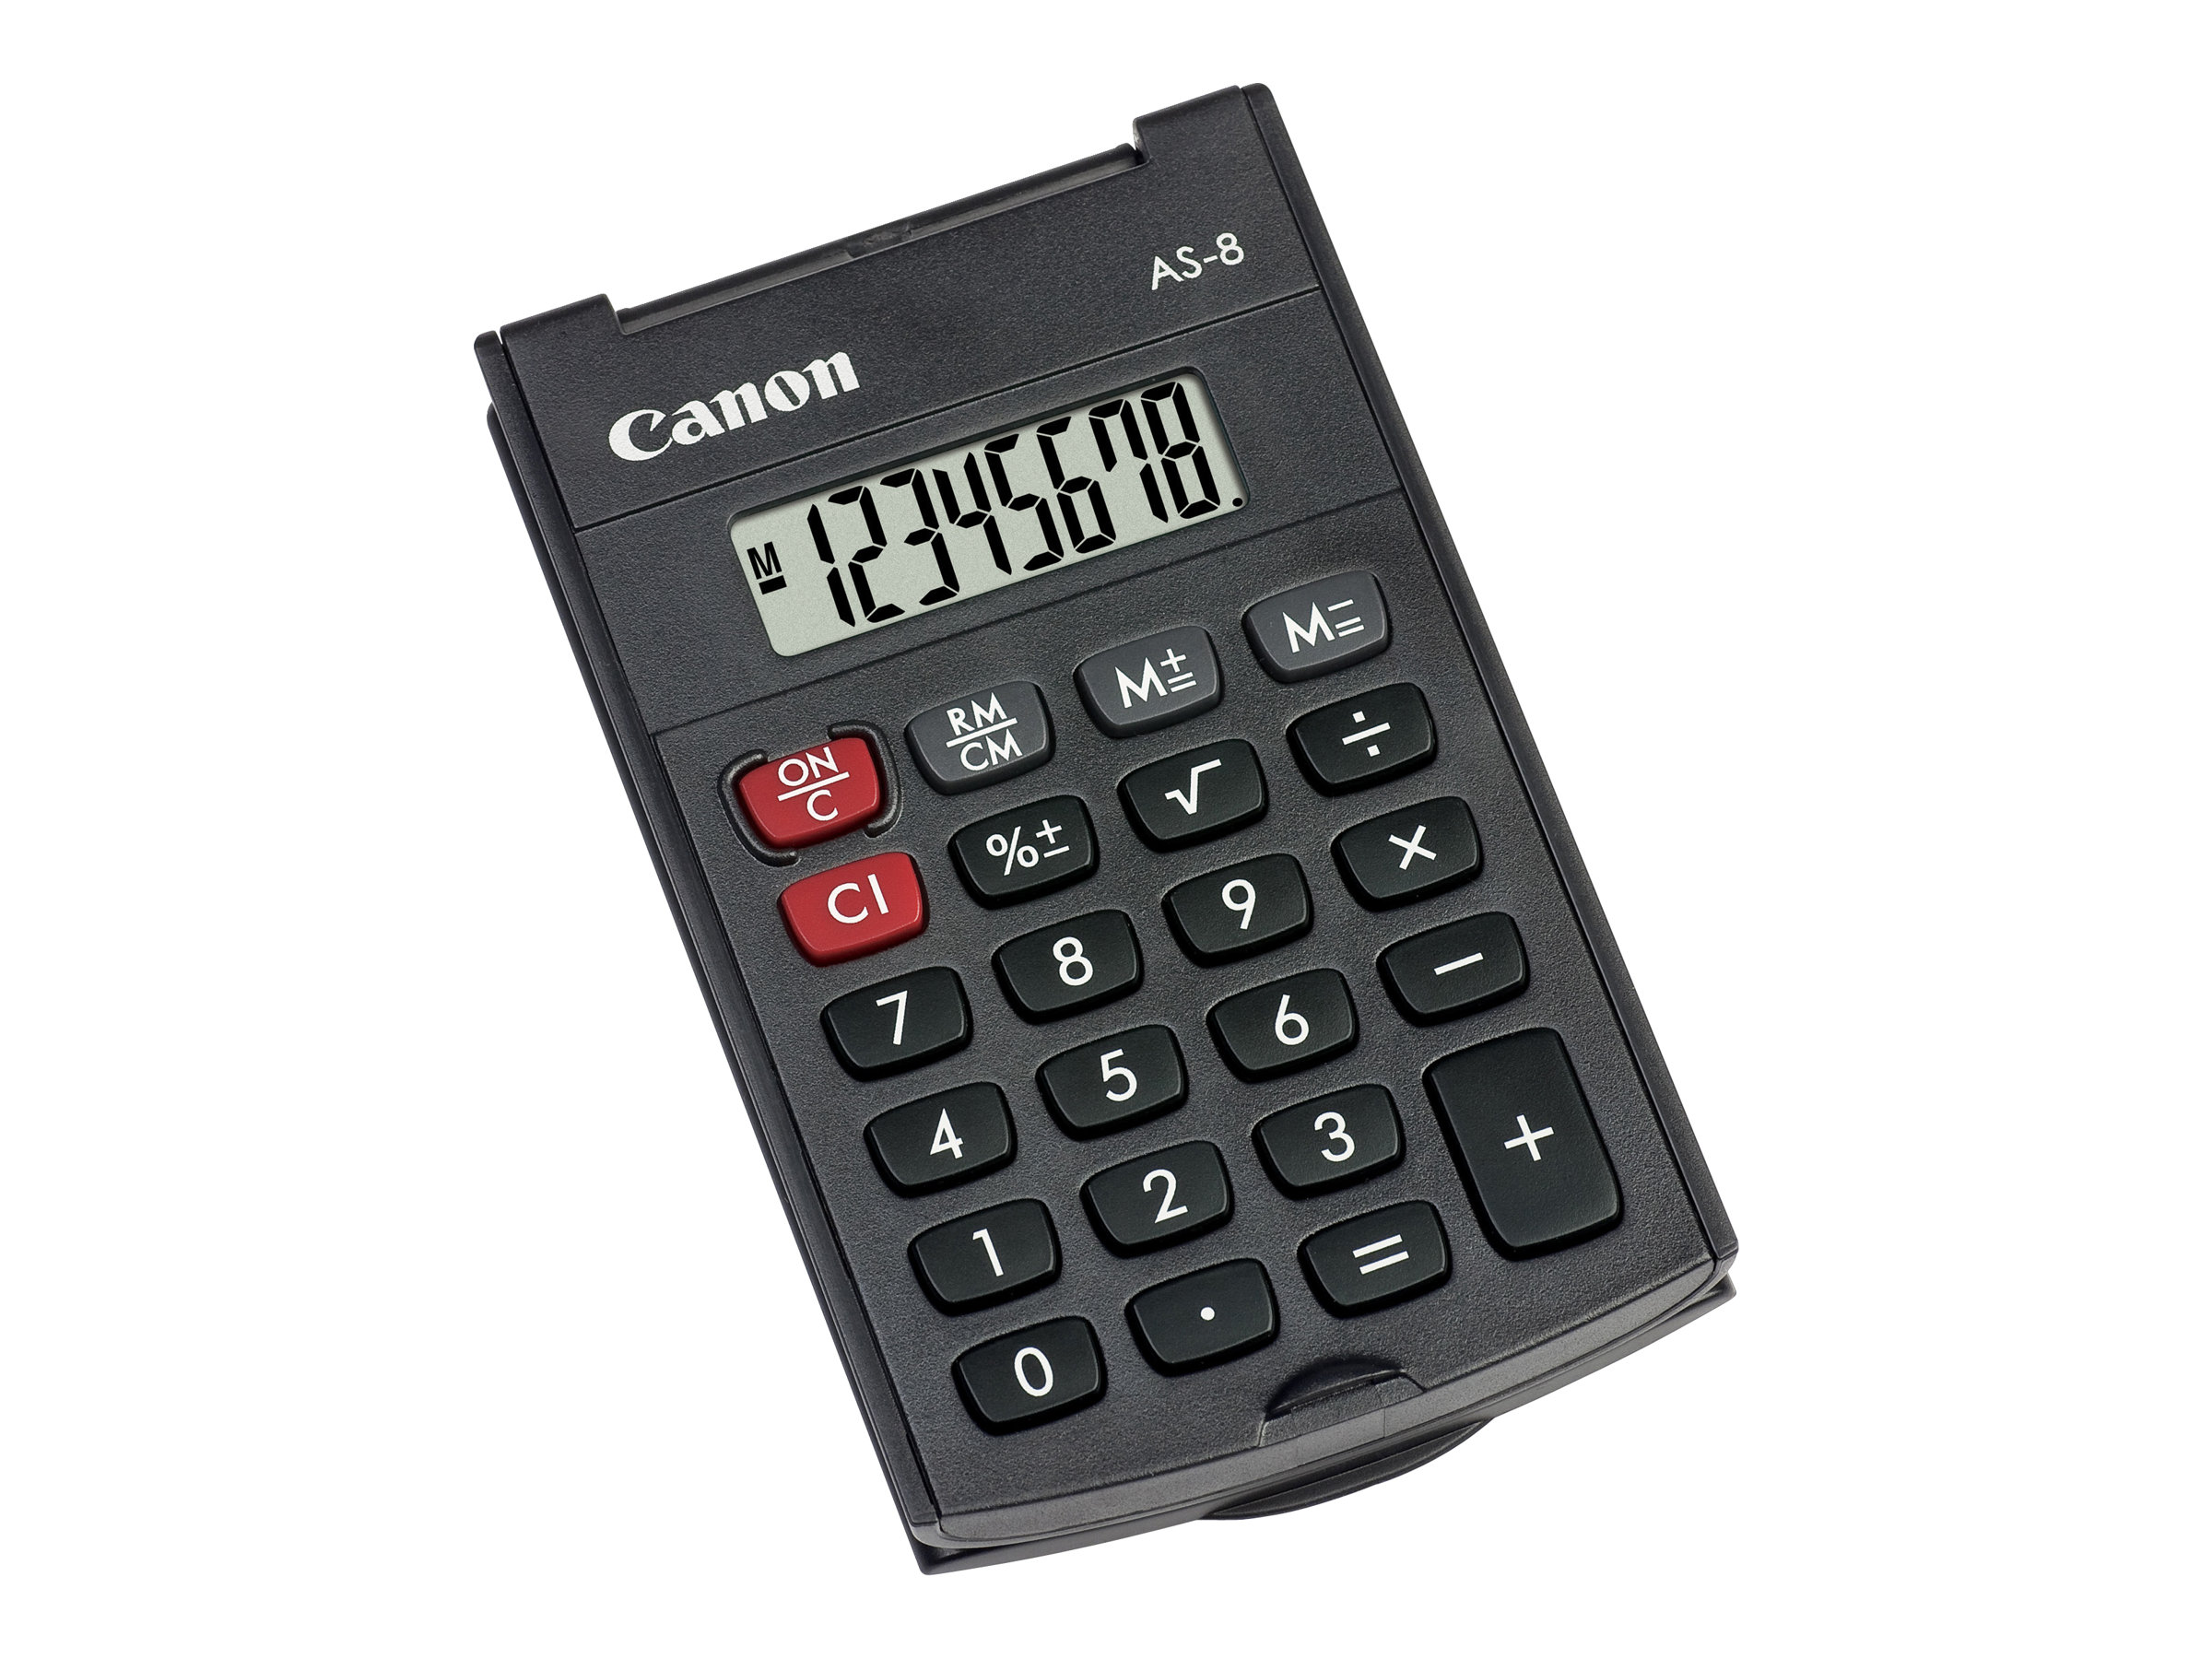 Canon AS-8 - calculatrice de poche